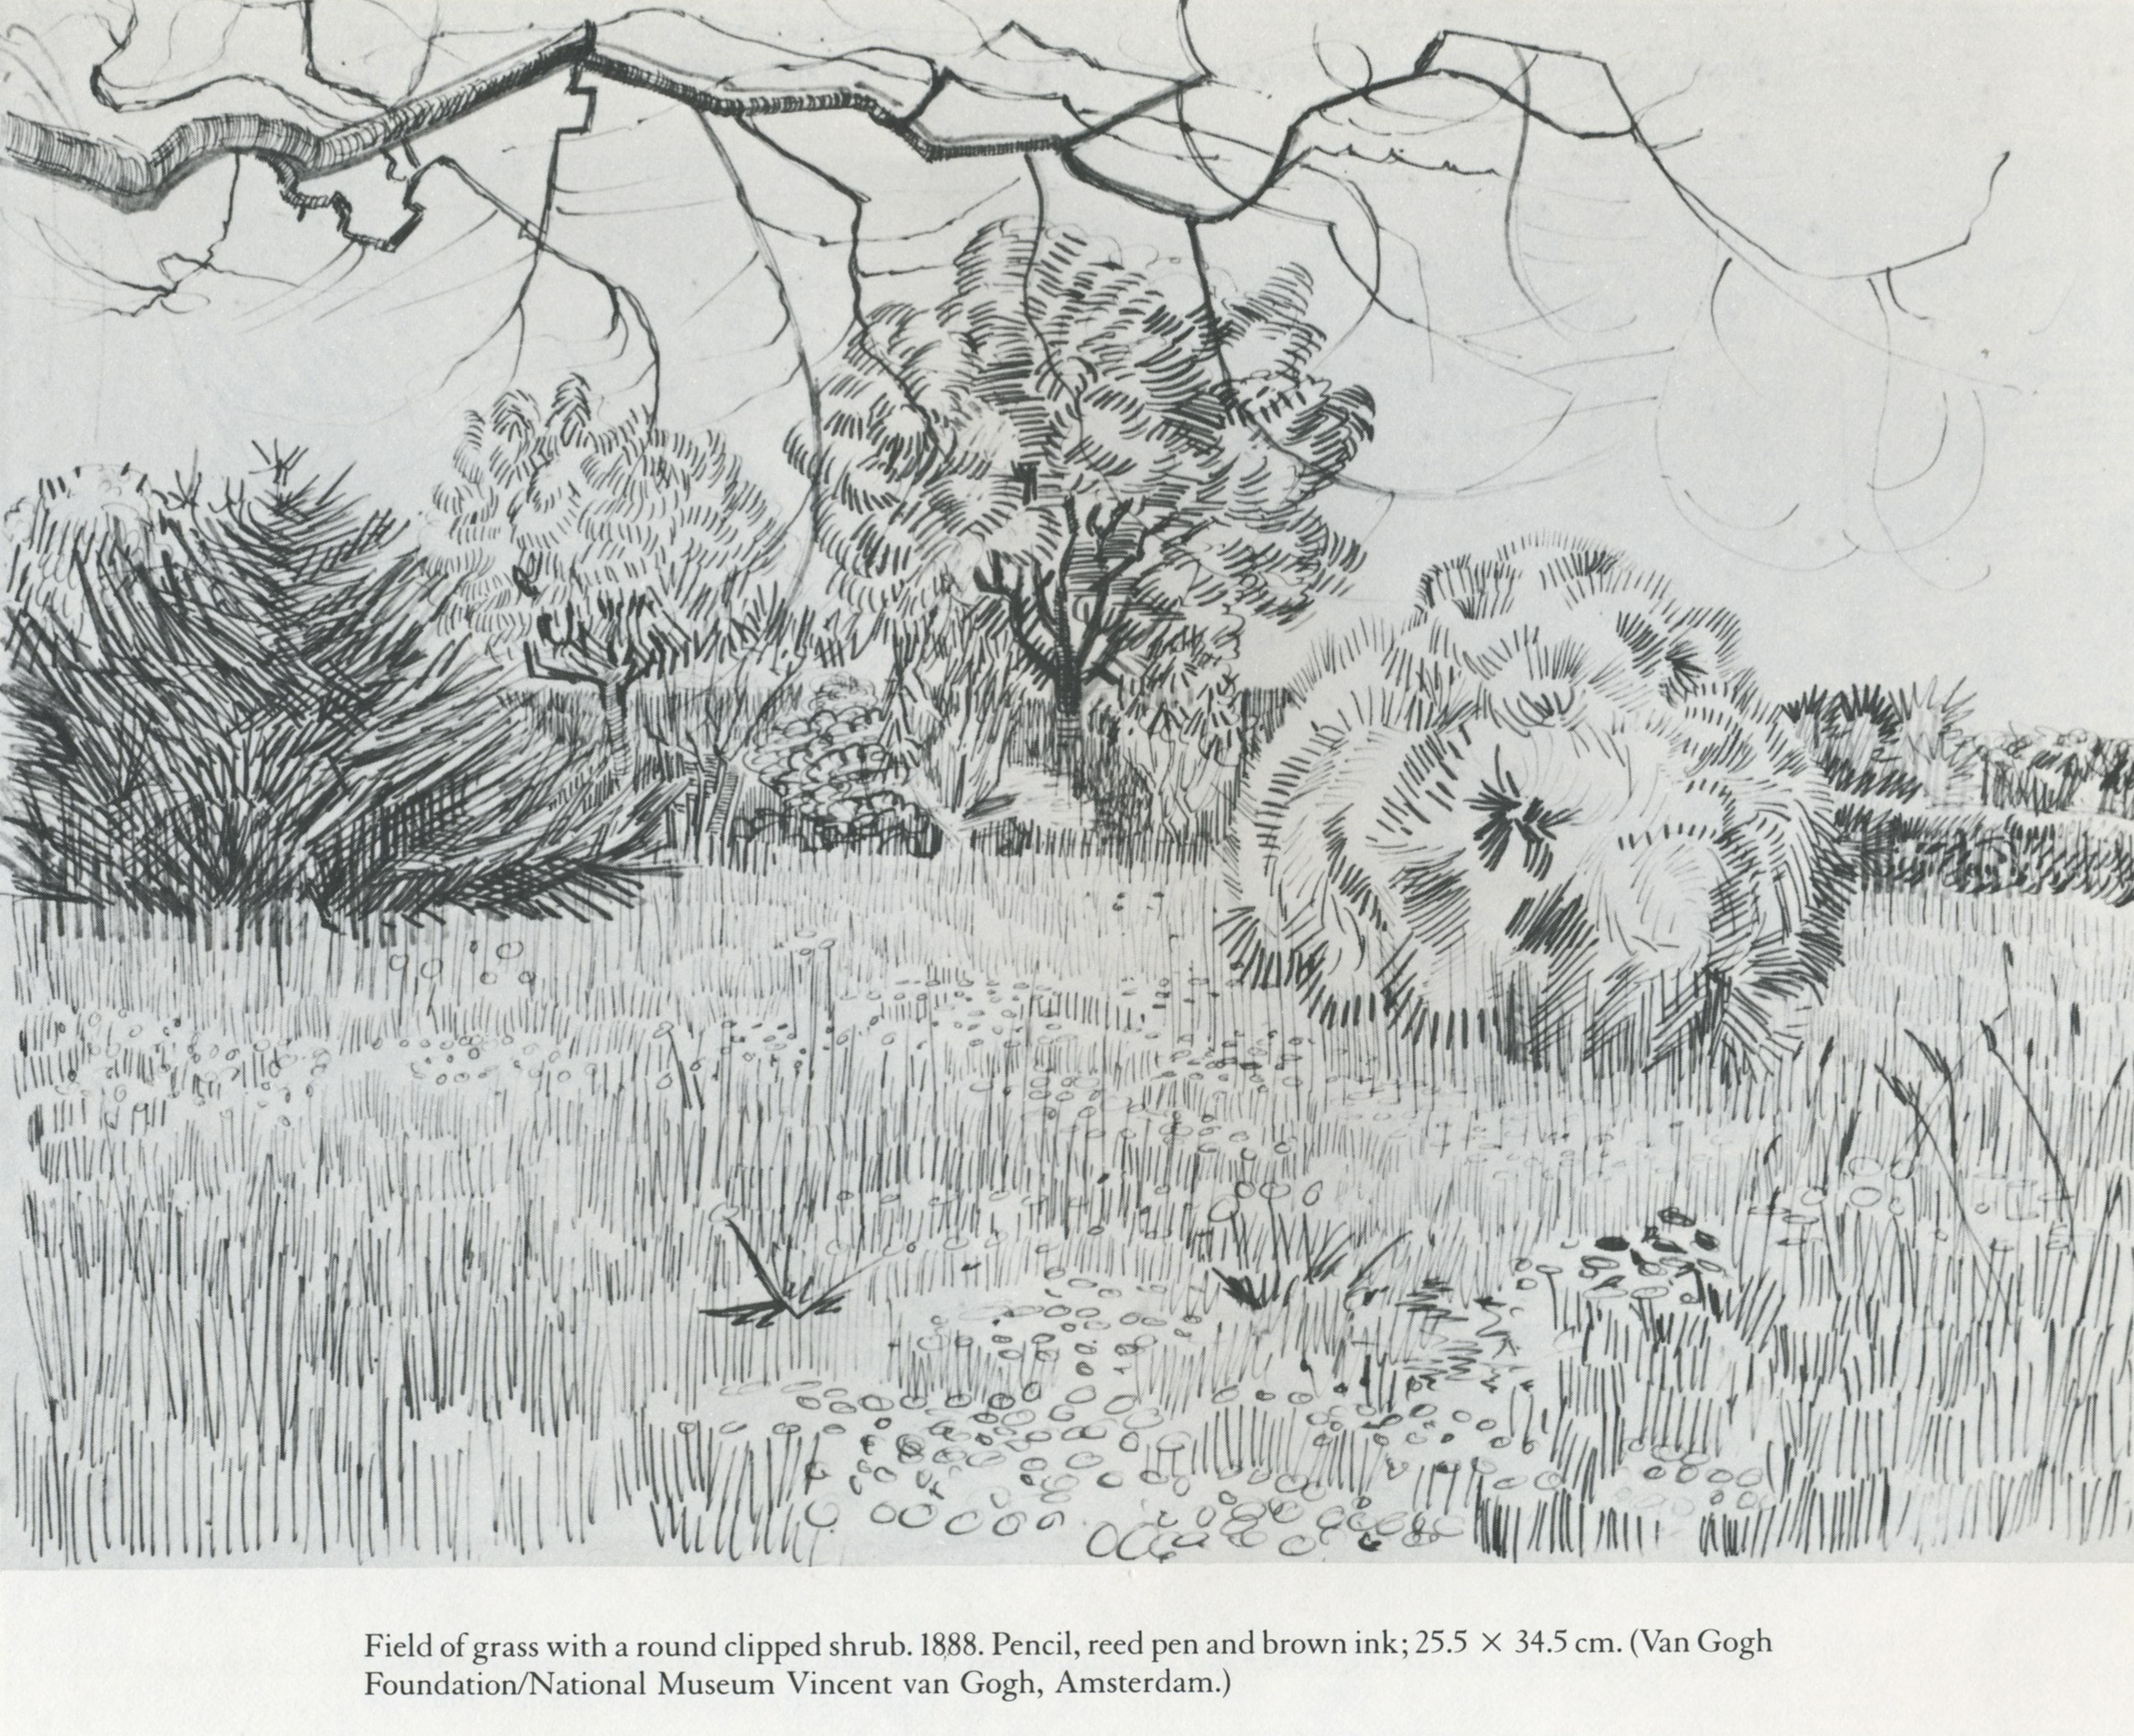 Line Art Landscape : Pencil sketches of nature sceneries landscapes